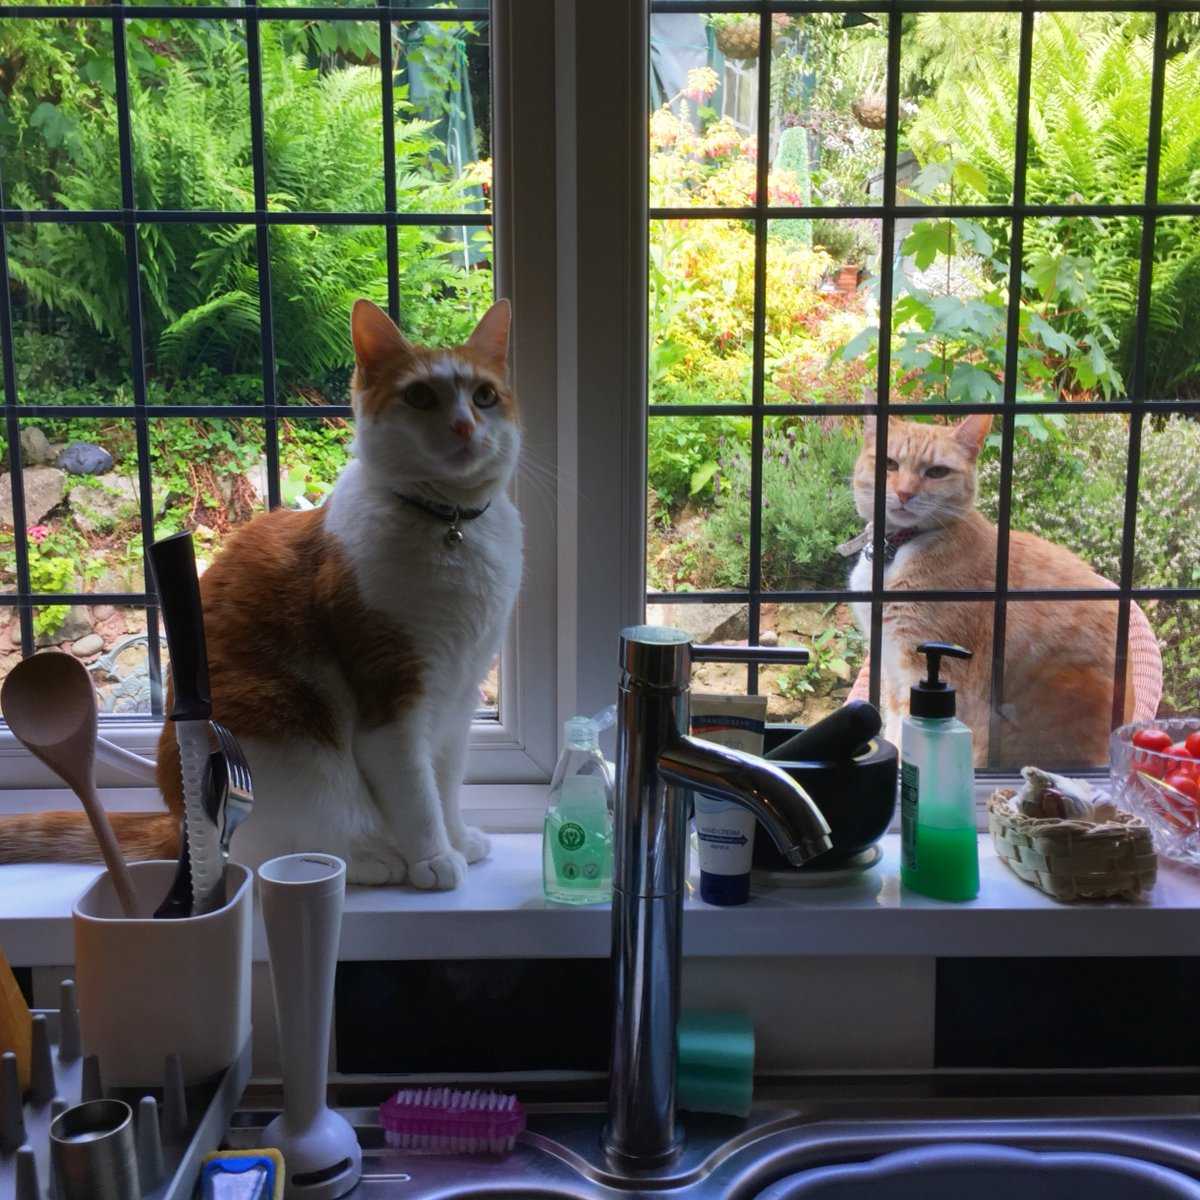 If I ignore him, he might just go away! 🐈   #caturday #CatsOfTwitter #gingergang #Windows #cats #saturday